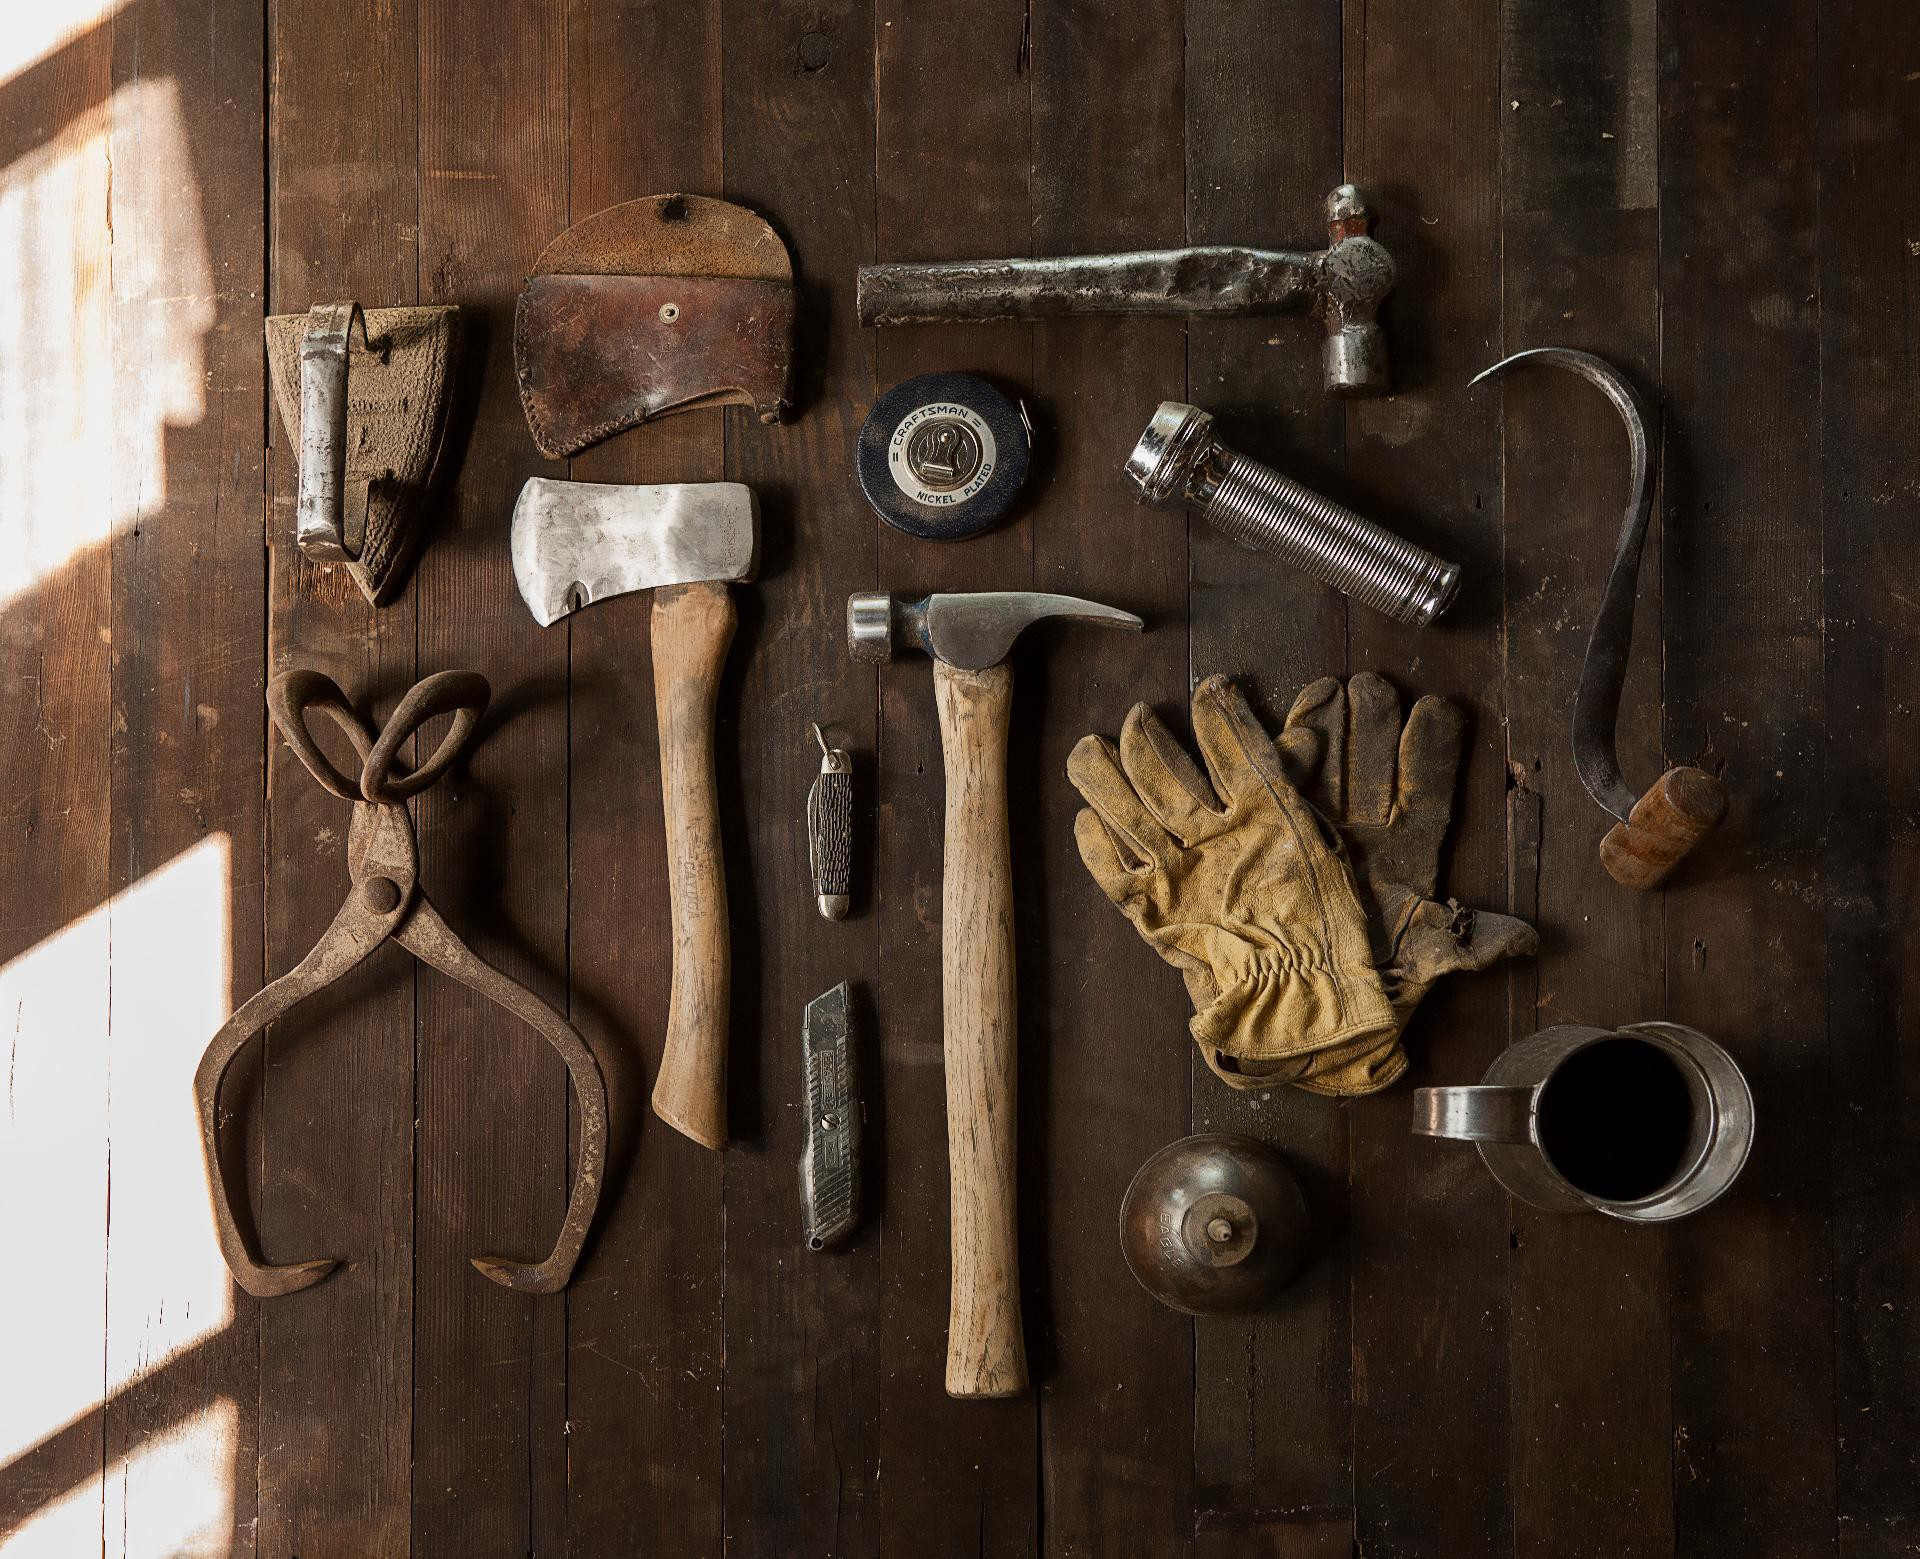 Image of different tools needed for construction work. This is an analogy for the toolbox we need for our careers in terms of skills.